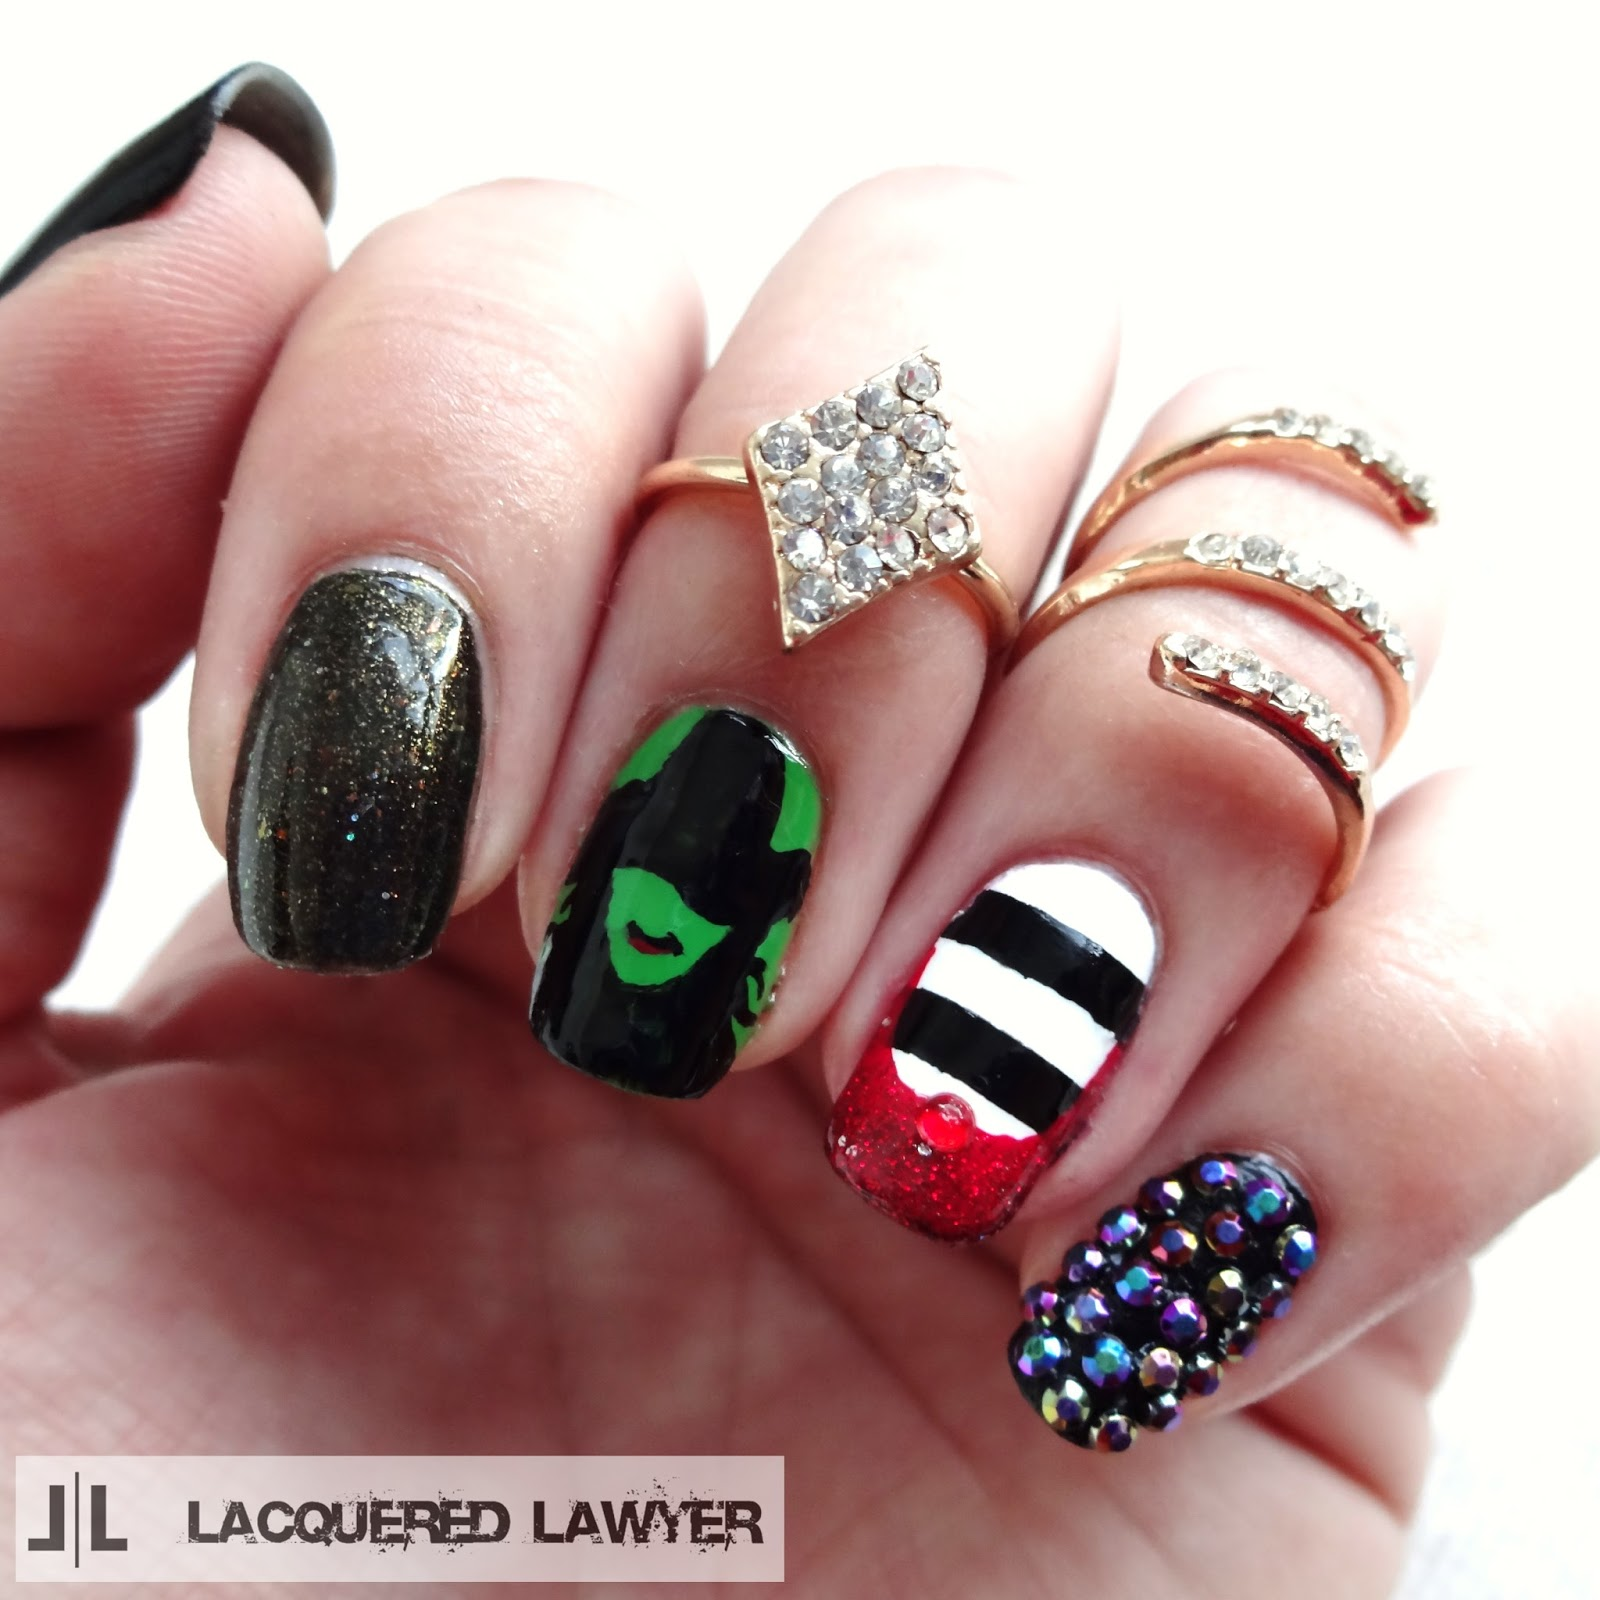 Lacquered Lawyer | Nail Art Blog: 2014